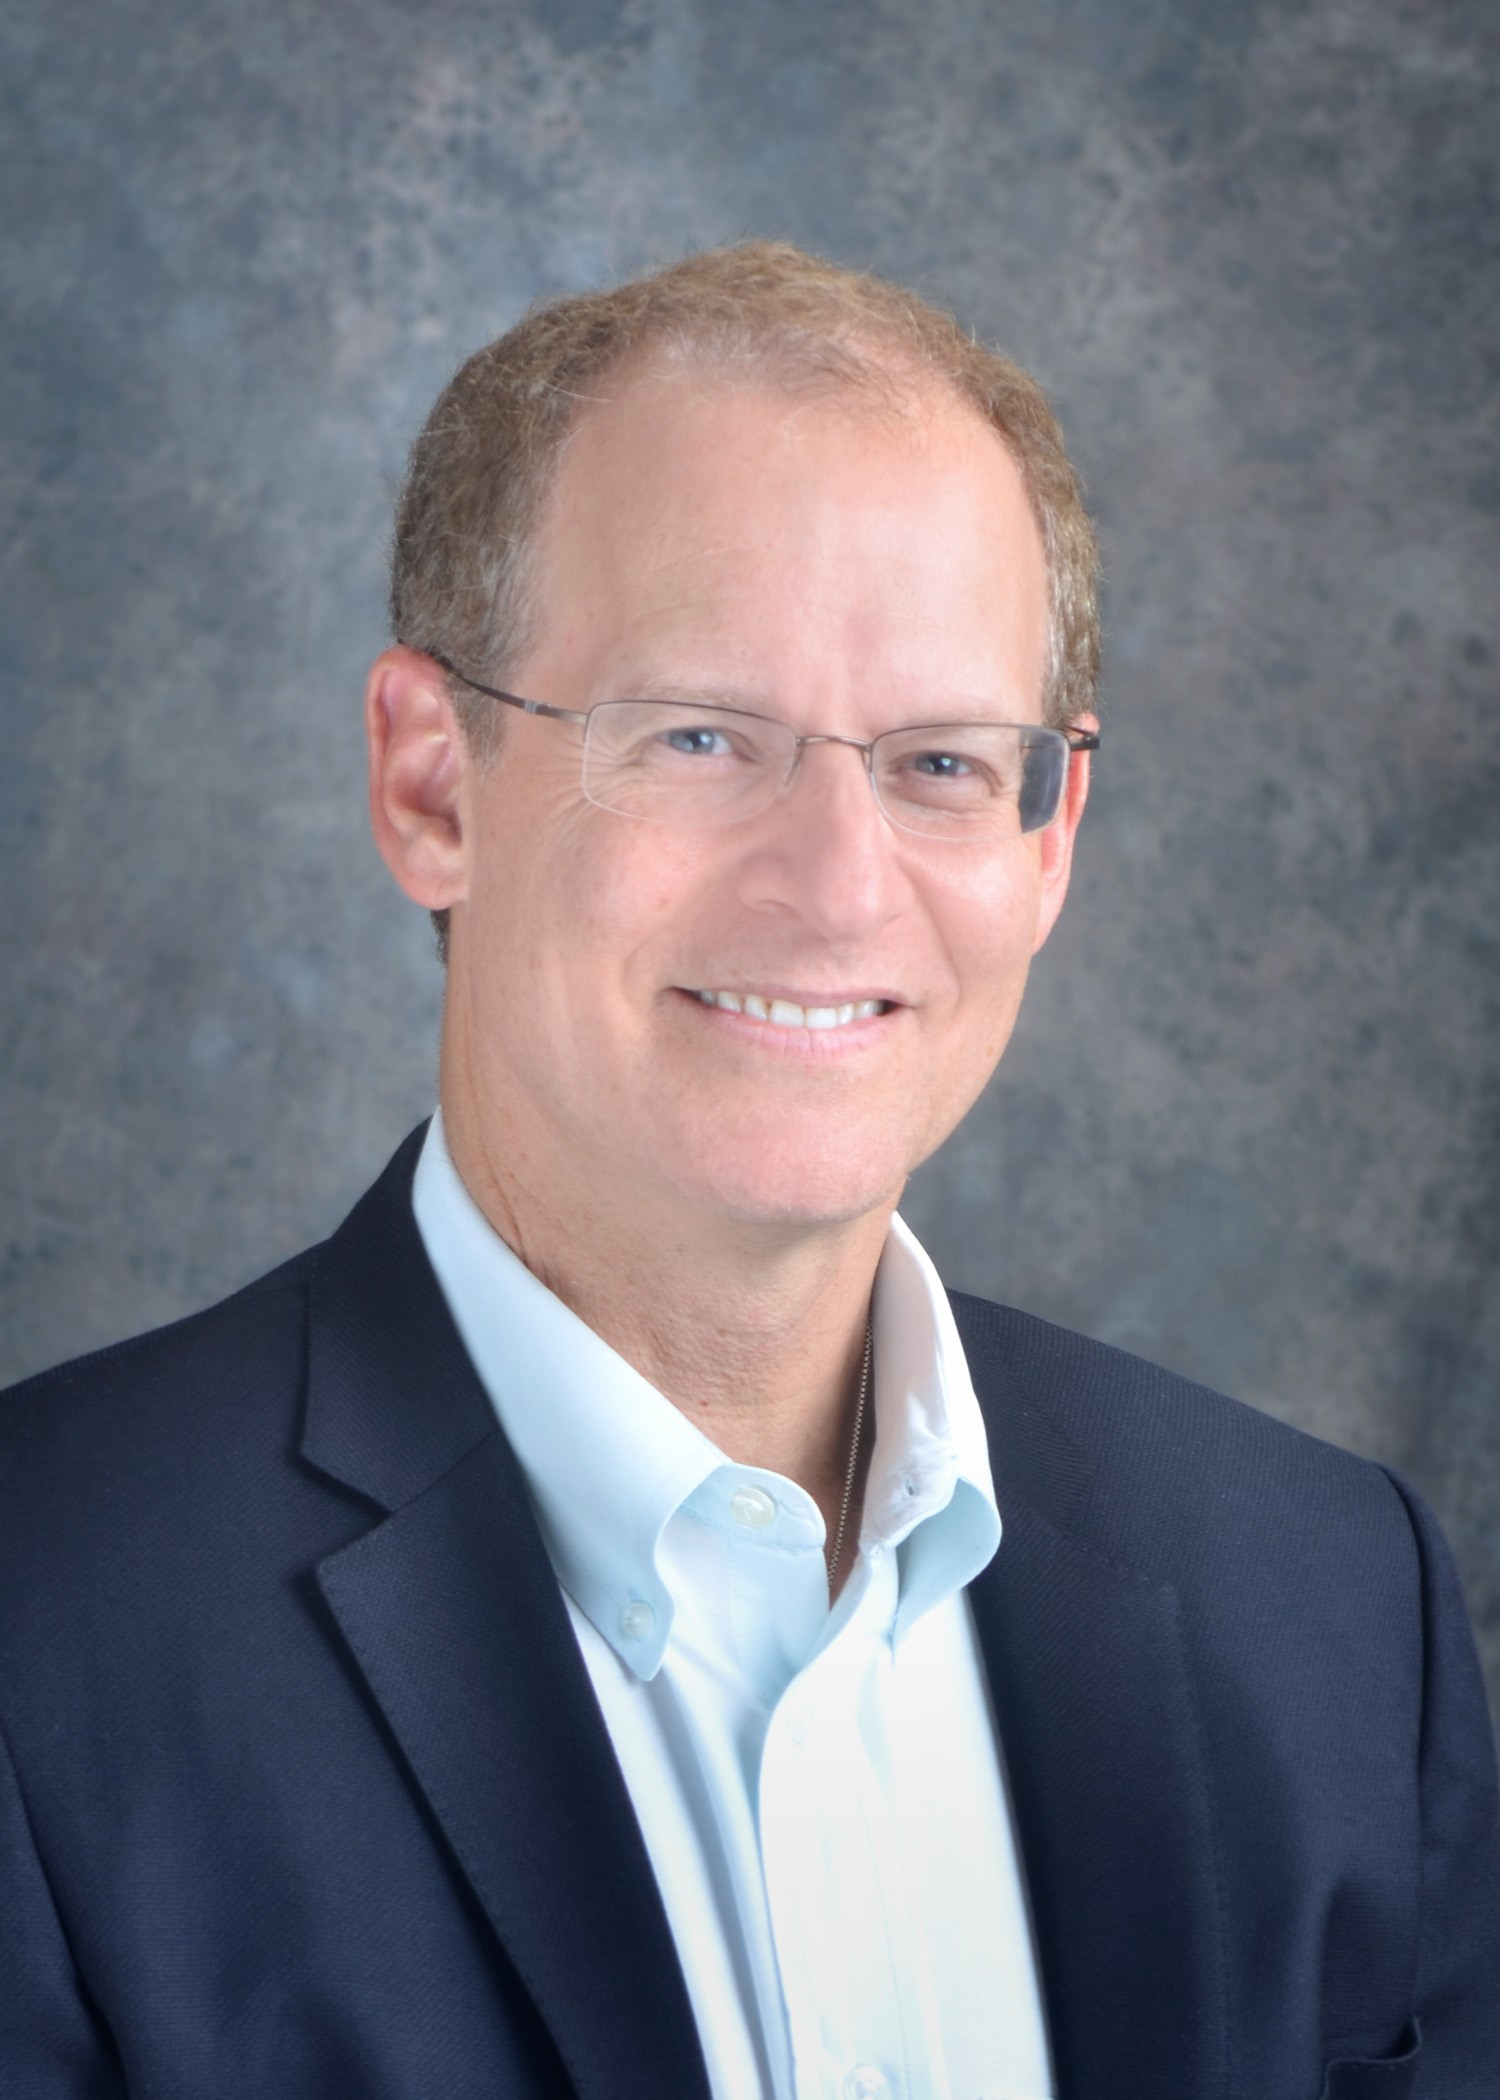 Dr. Russell Greenfield joins PurThread as Medical Director